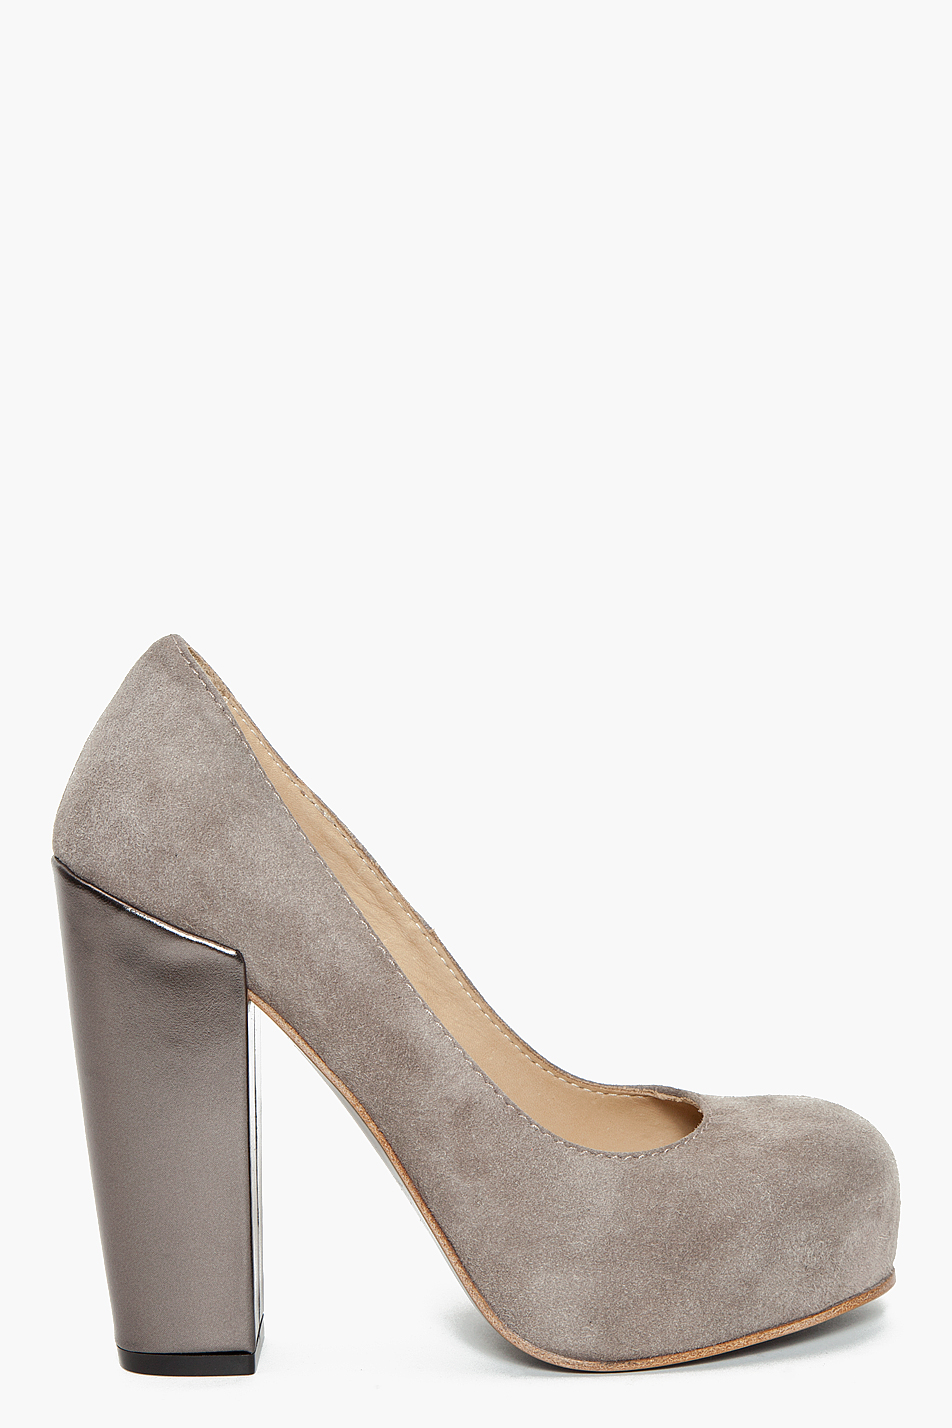 acne studios grey platform heels in gray grey lyst